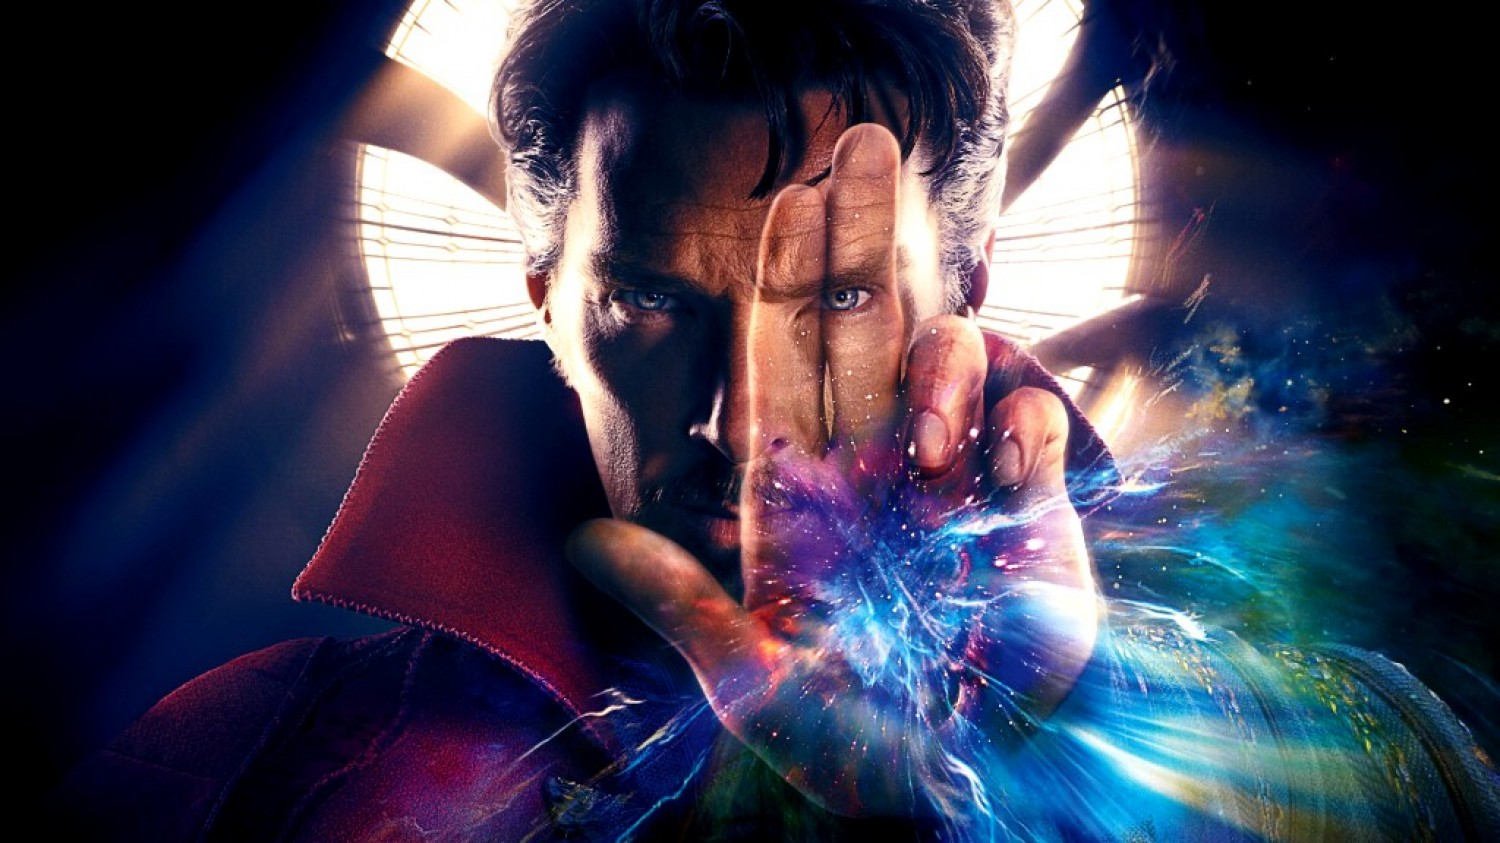 Doctor Strange (2016) Scott Derrickson - Movie Review